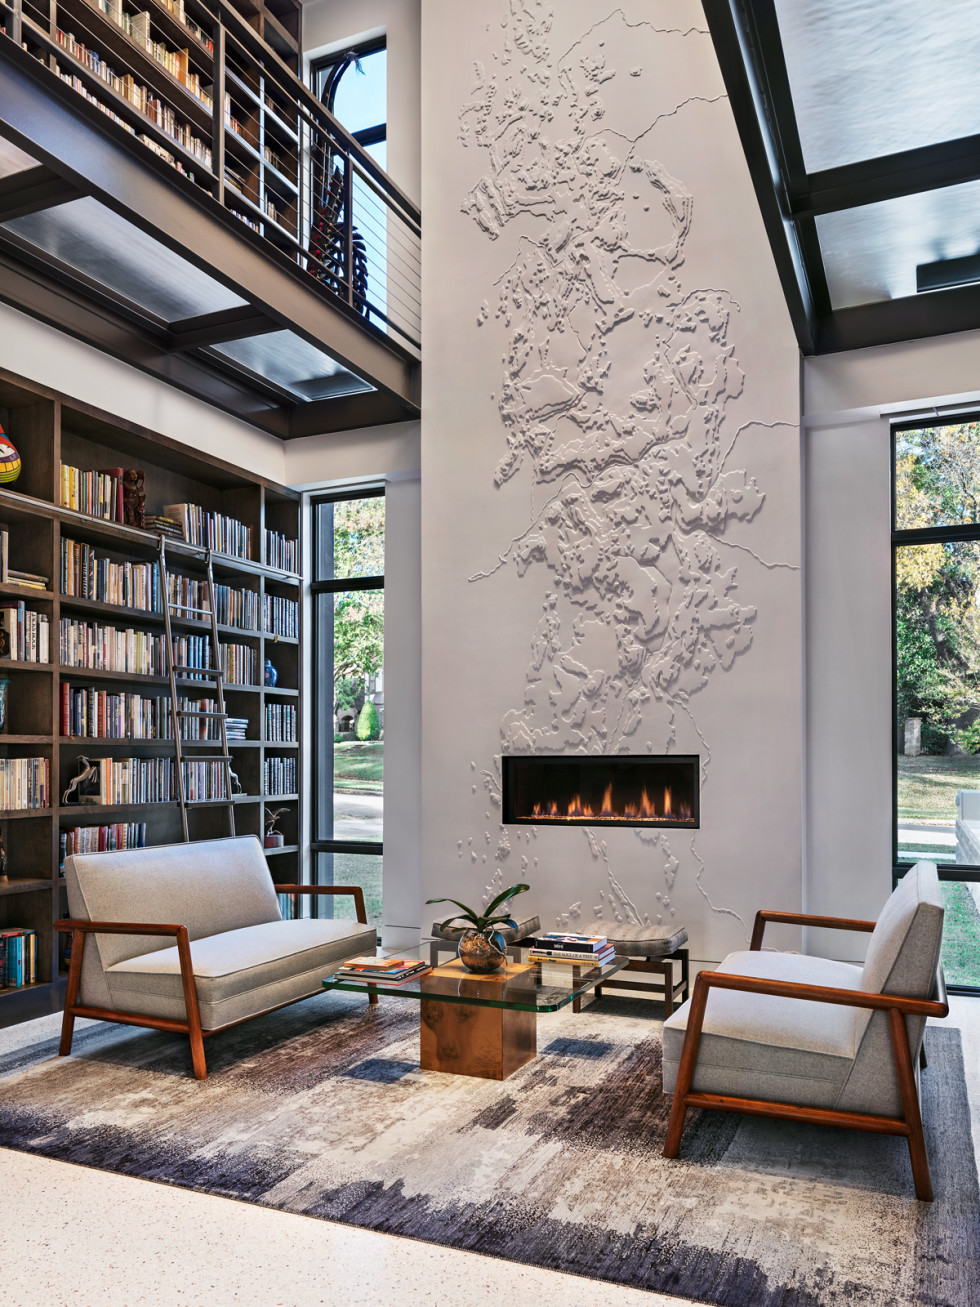 BennettBennerPartners, FWAIA home tour 2019